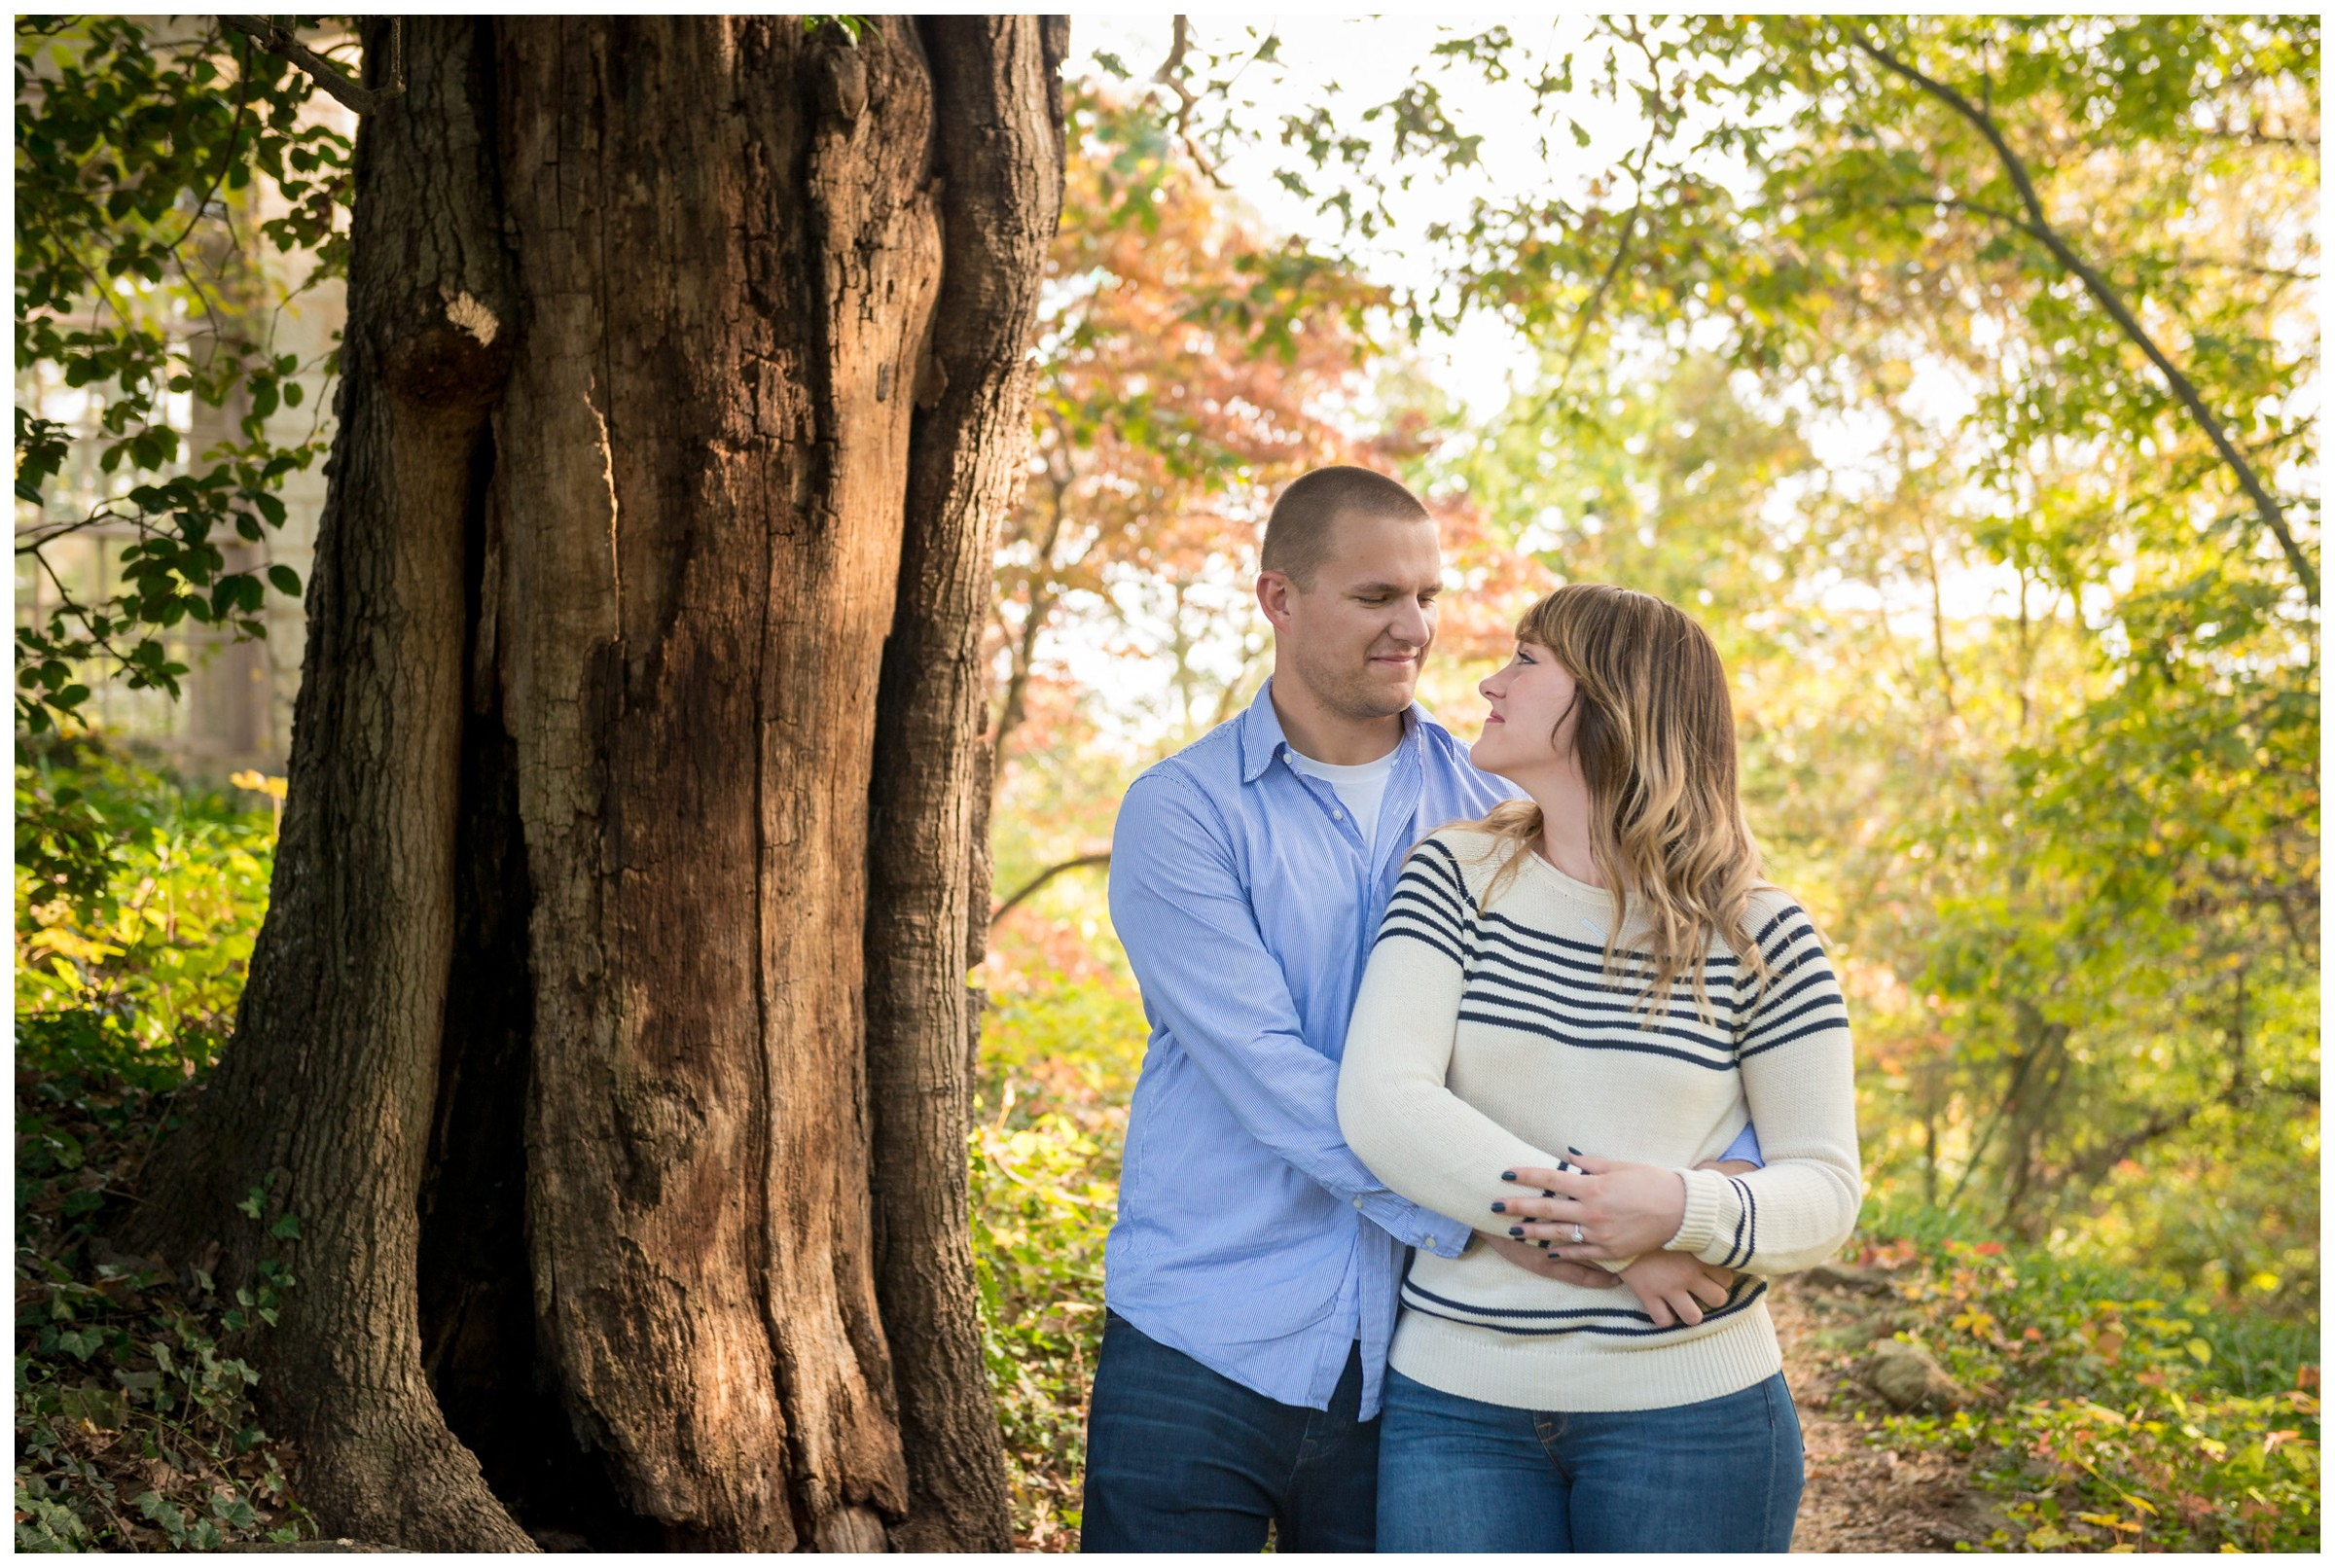 northern Virginia engagement photography at Belmont in Fredericksburg